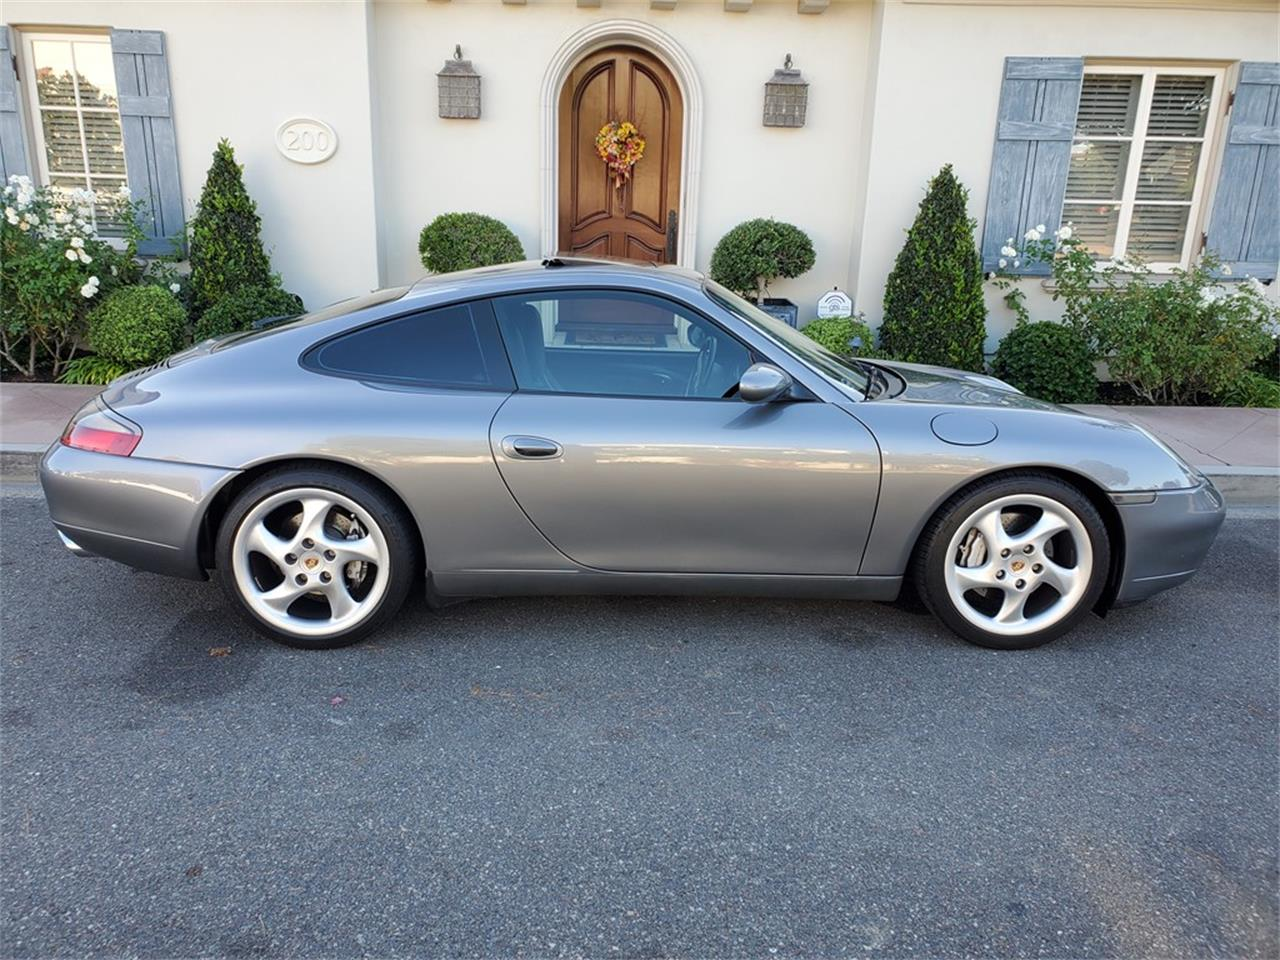 2001 Porsche 911 Carrera (CC-1276180) for sale in Costa Mesa, California